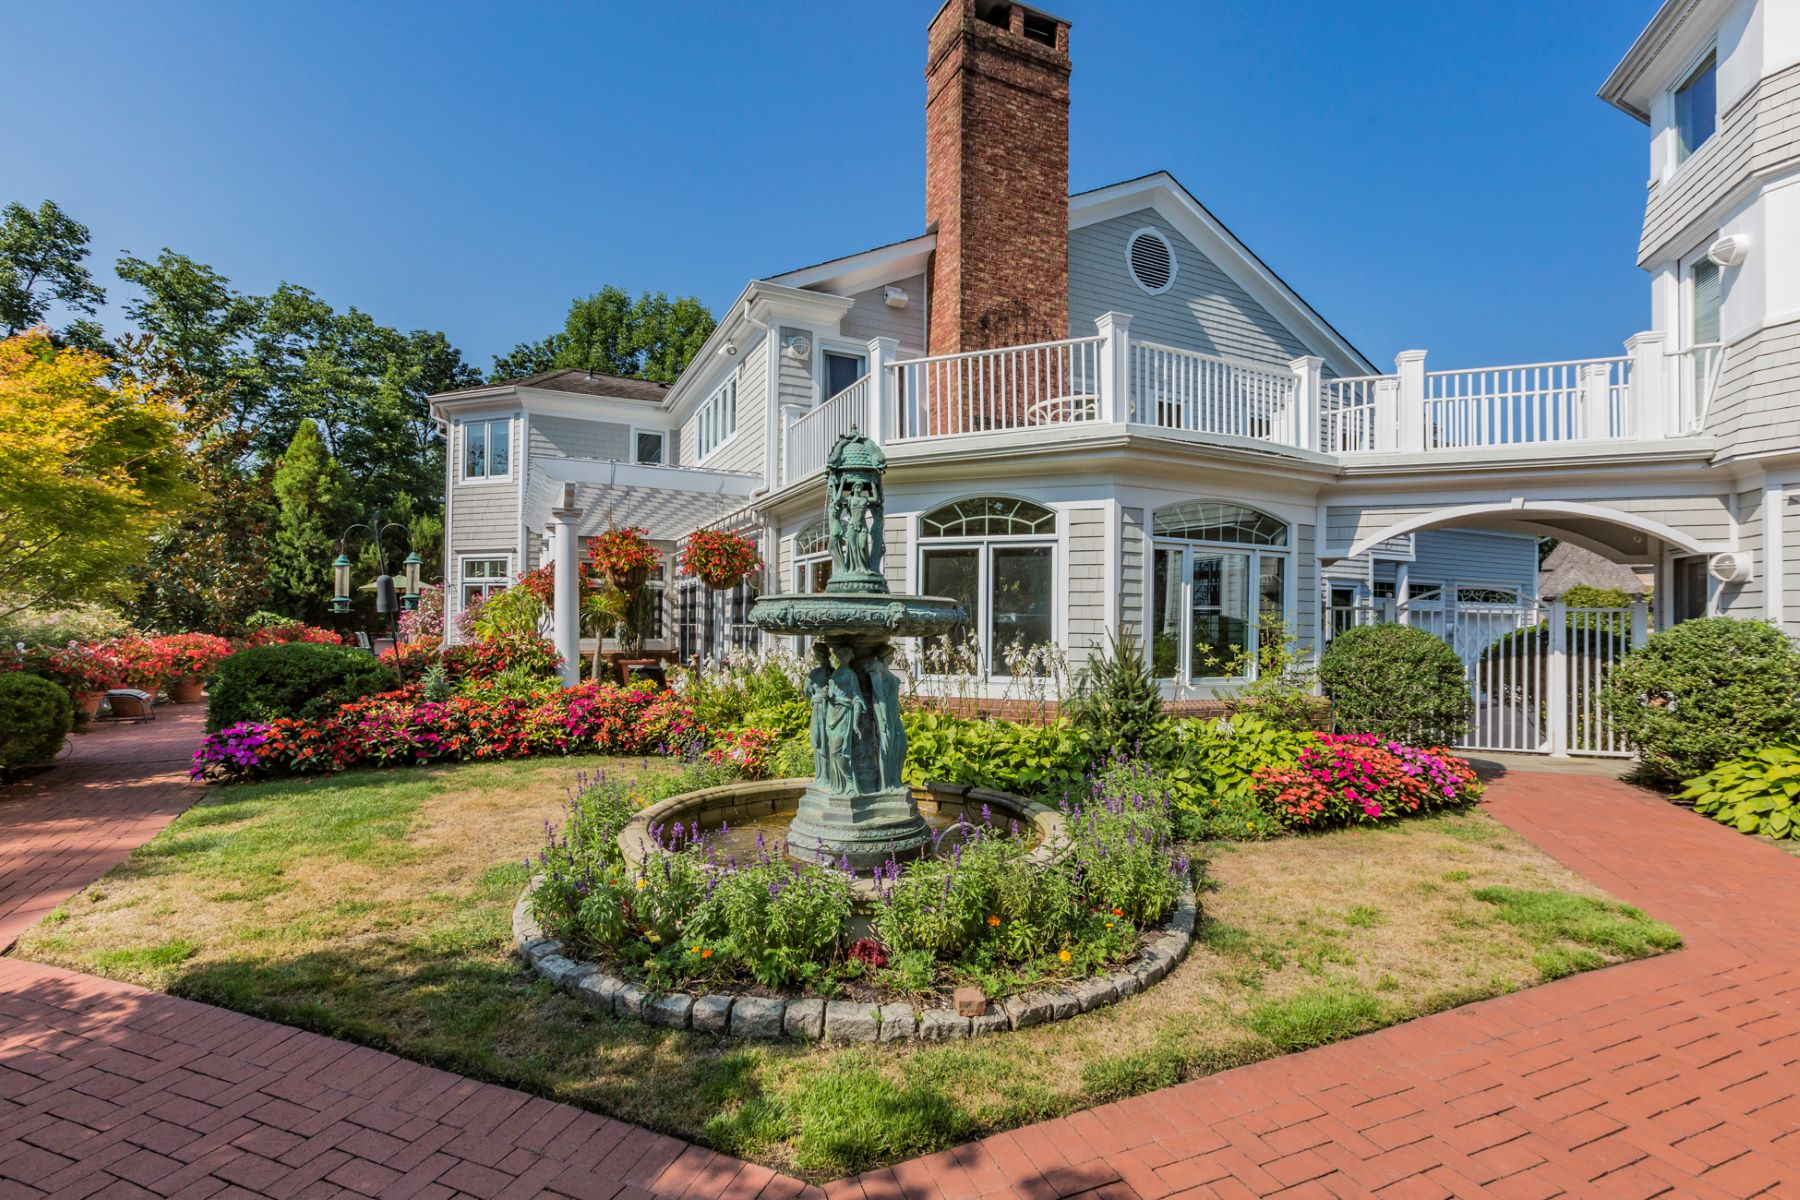 Additional photo for property listing at Luxurious Living In A Class Of Its Own 17 Katies Pond Road, Princeton, New Jersey 08540 United States